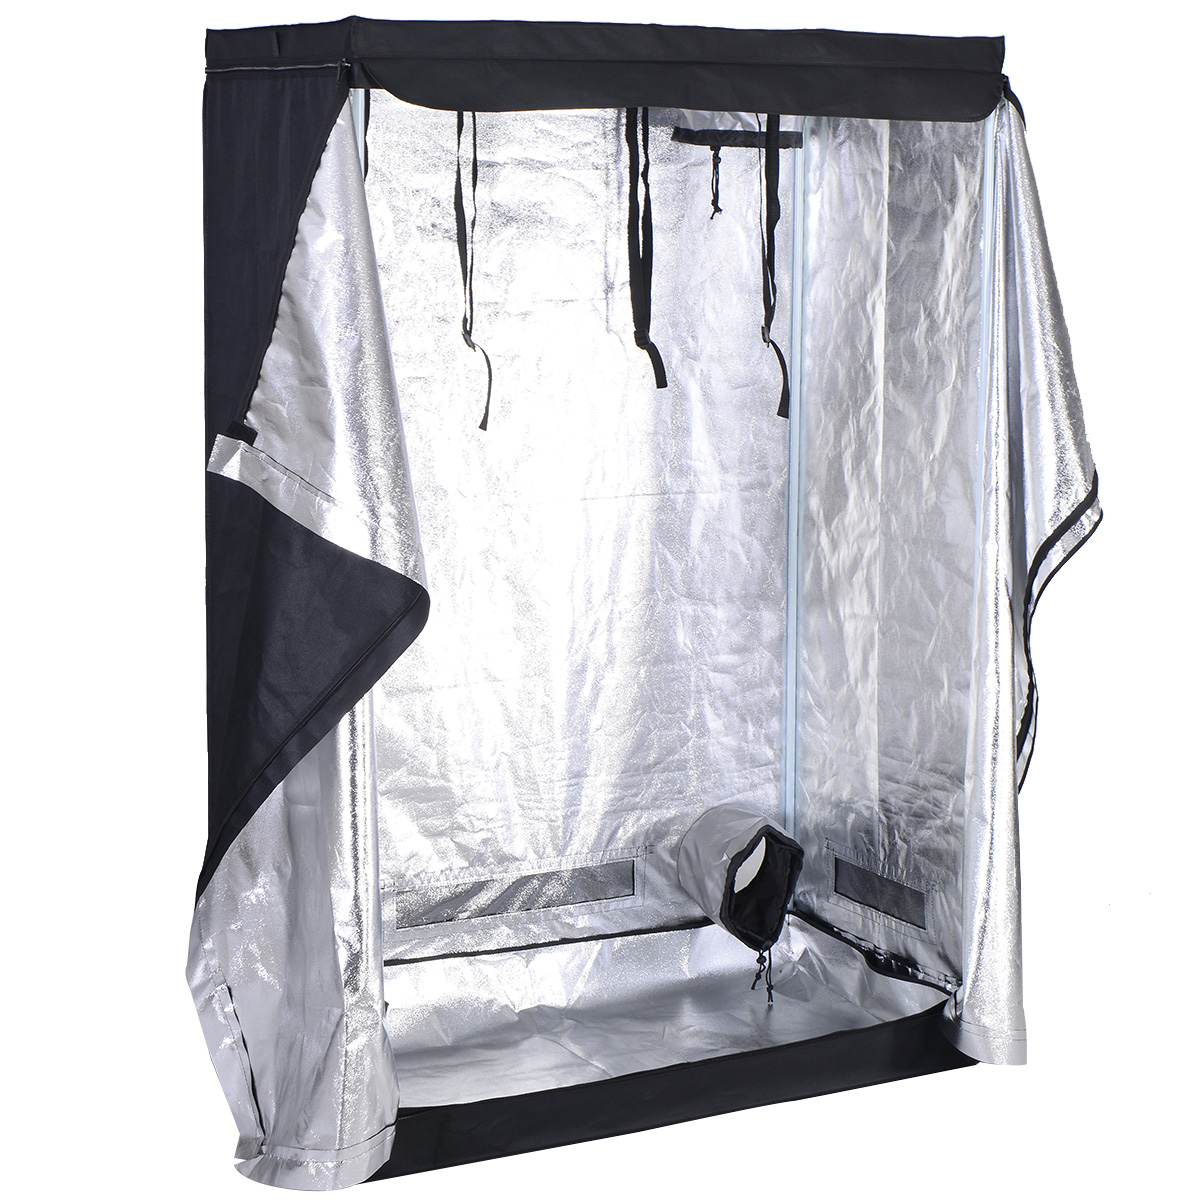 Costway Indoor Grow Tent Room Reflective Hydroponic Non Toxic Clone Hut 6 Size (48''X24''X72'')